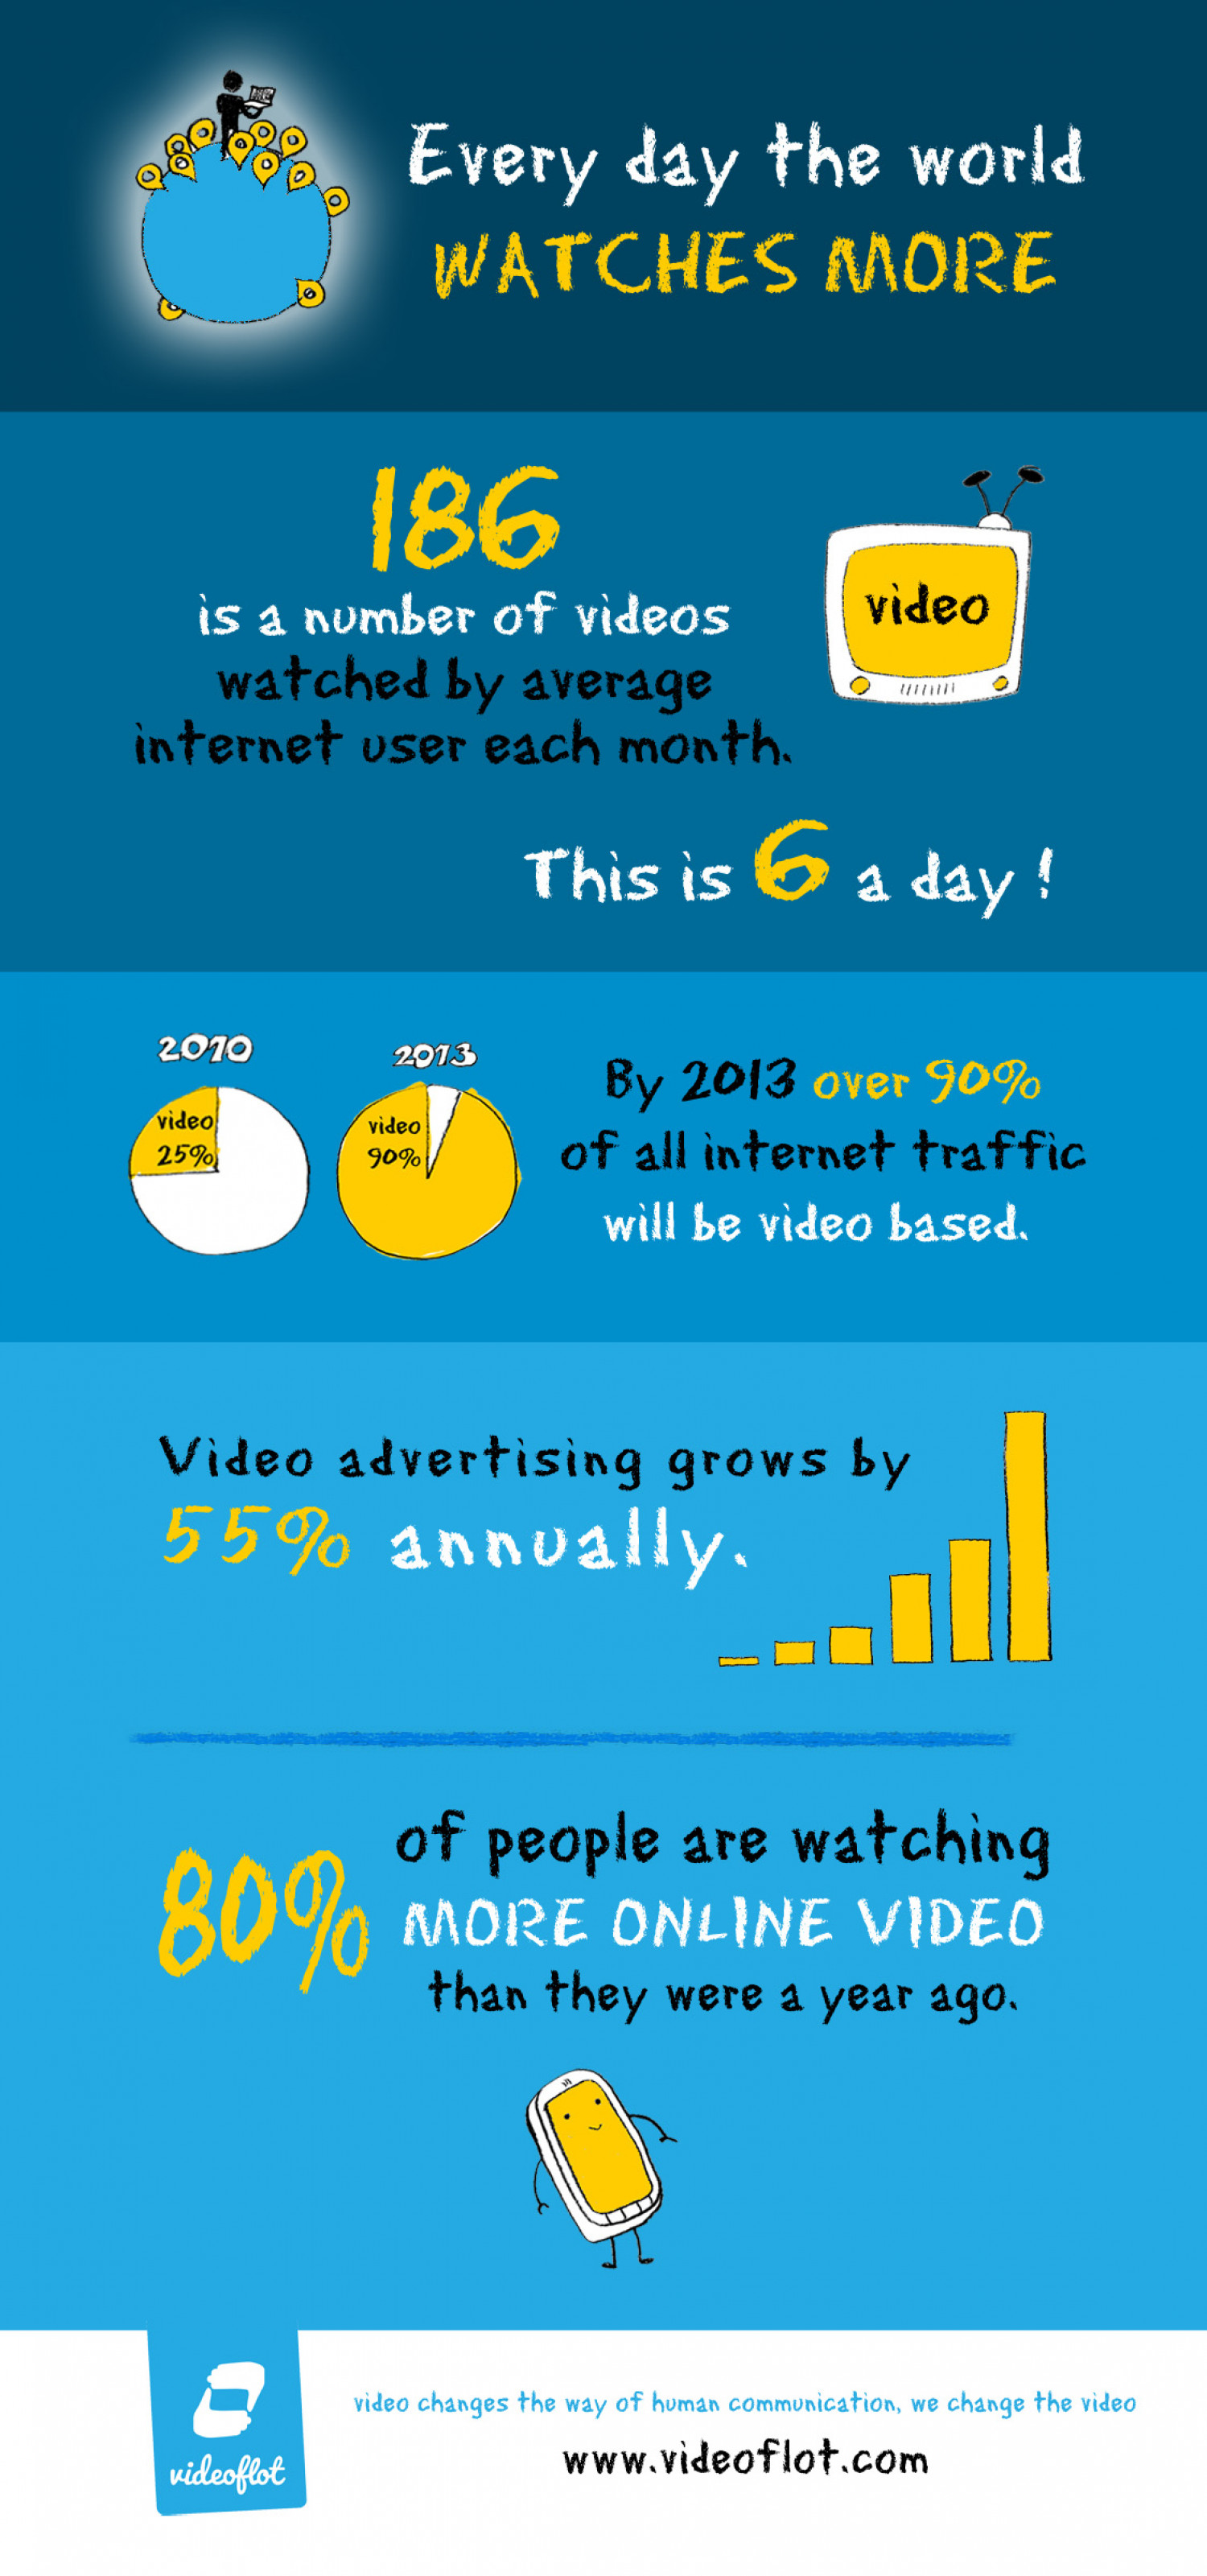 Every day the world watches MORE Infographic